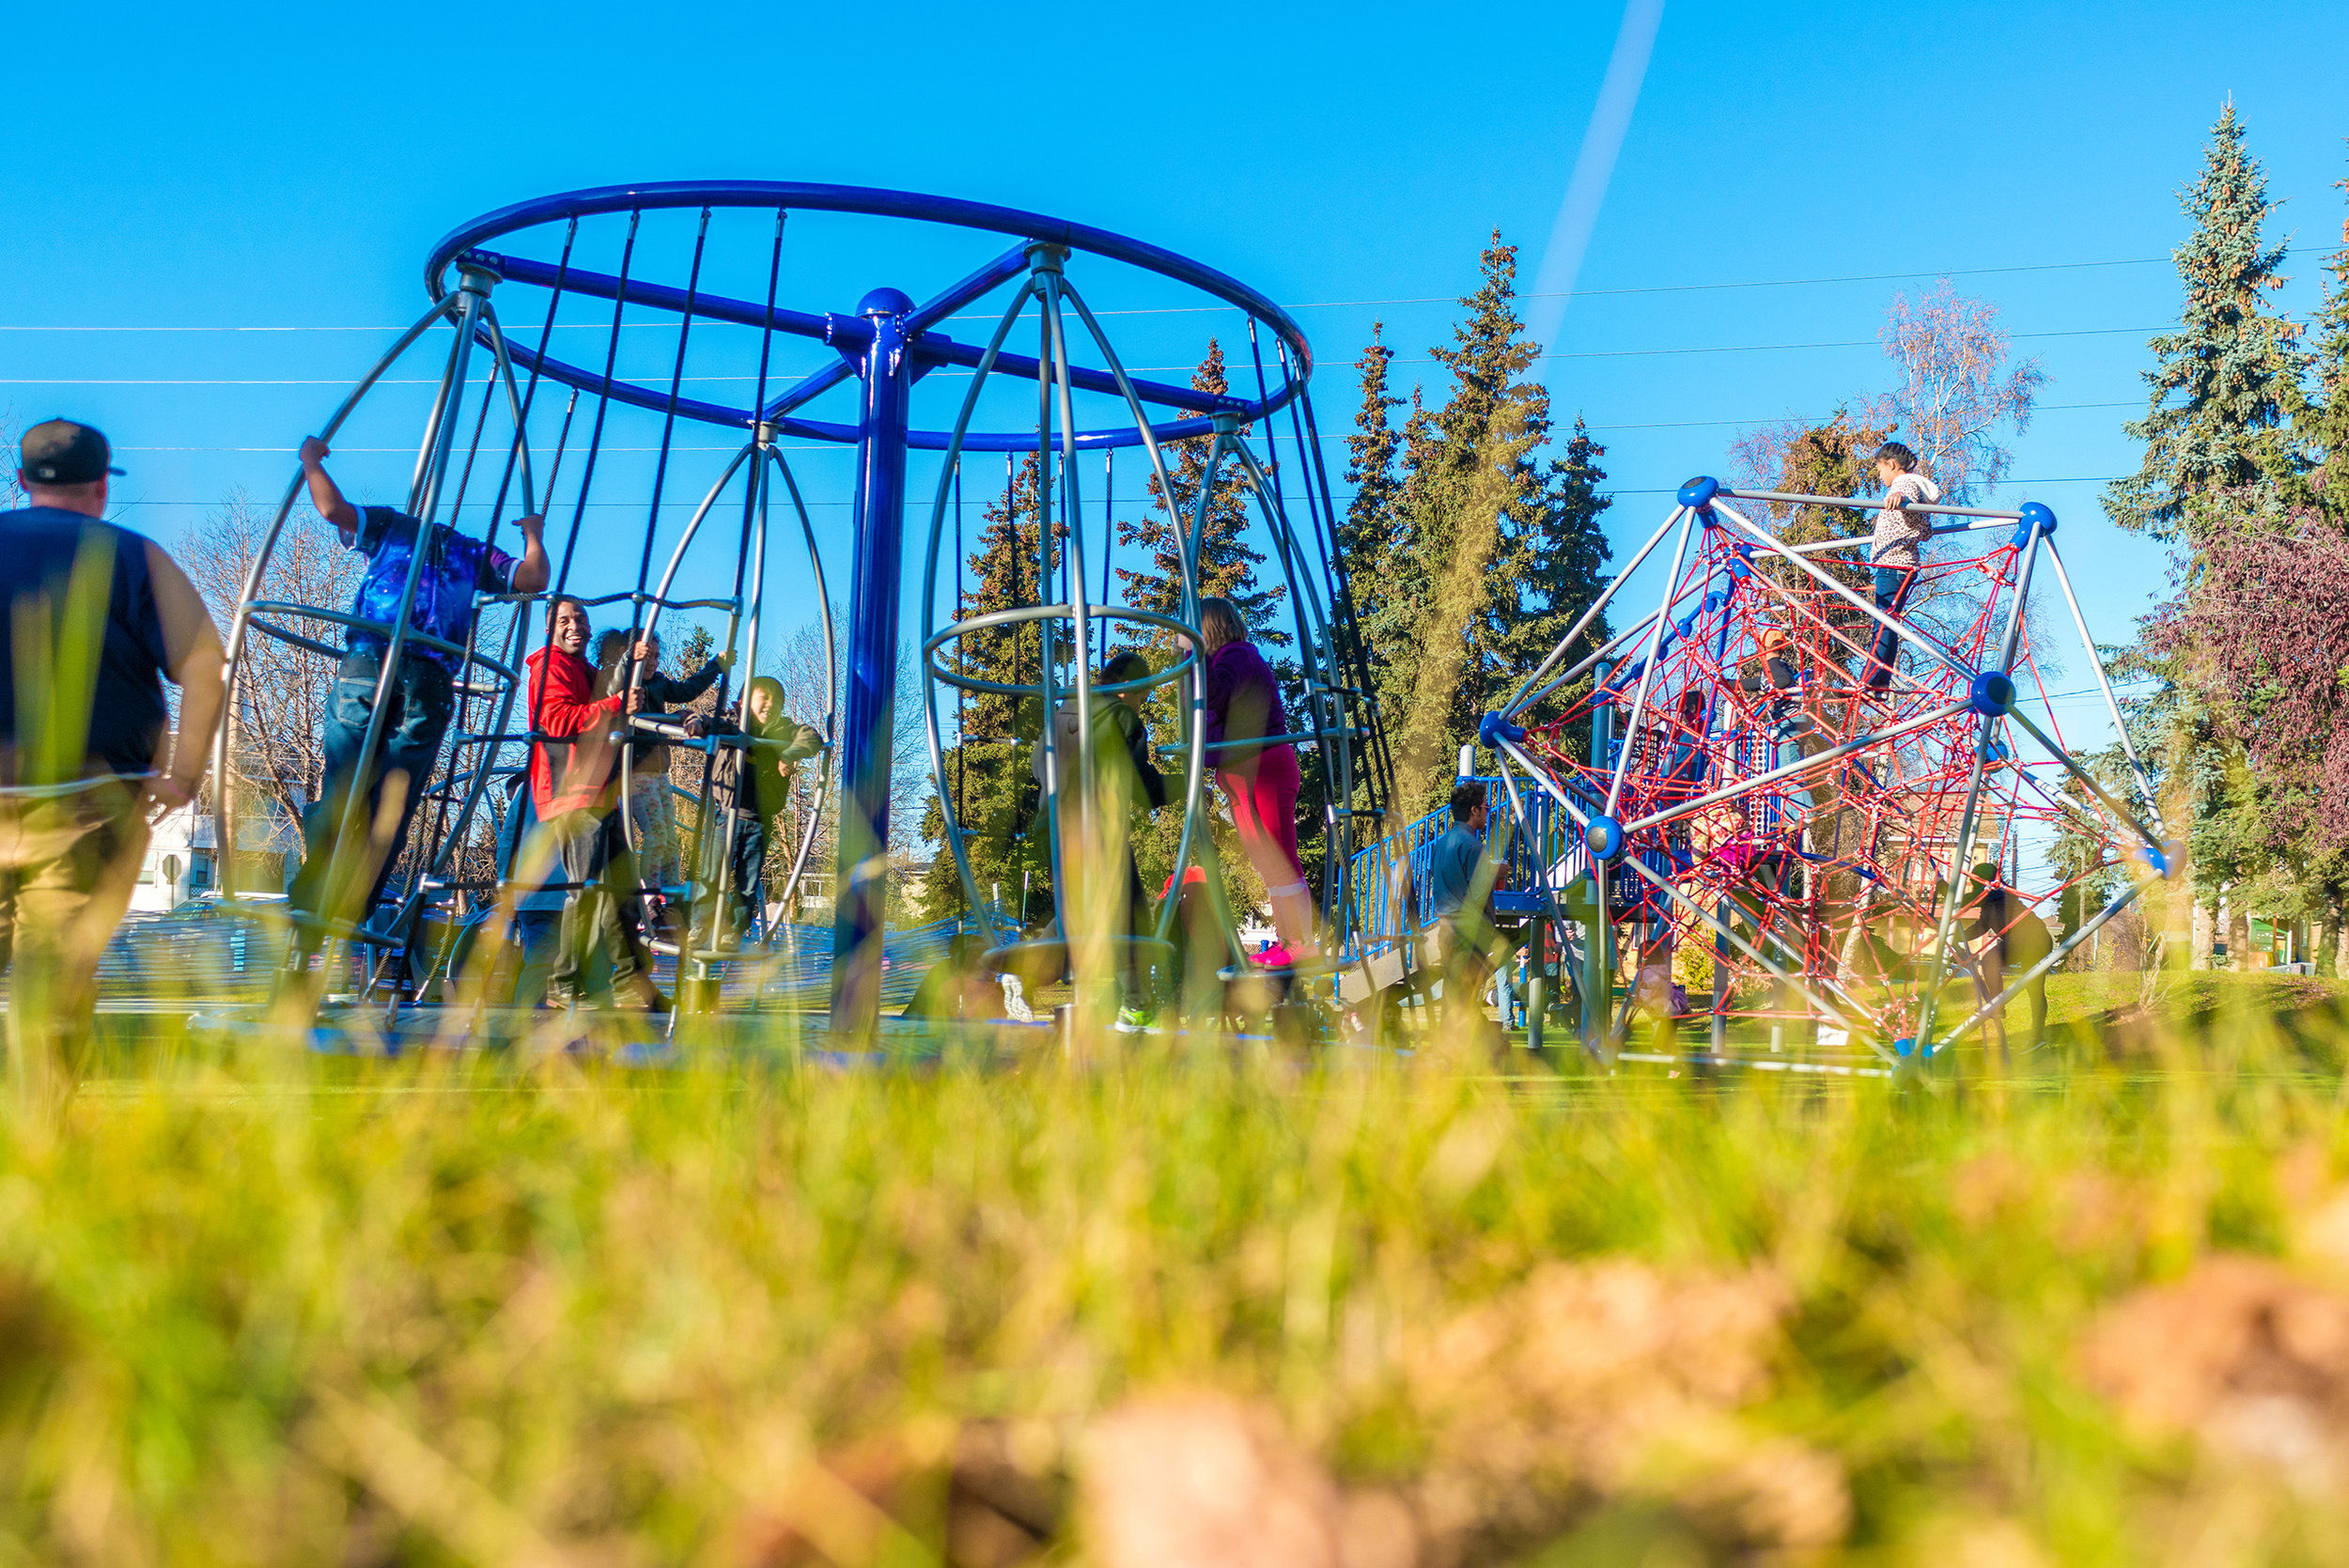 The finished product: Duldida Park in Anchorage, Alaska